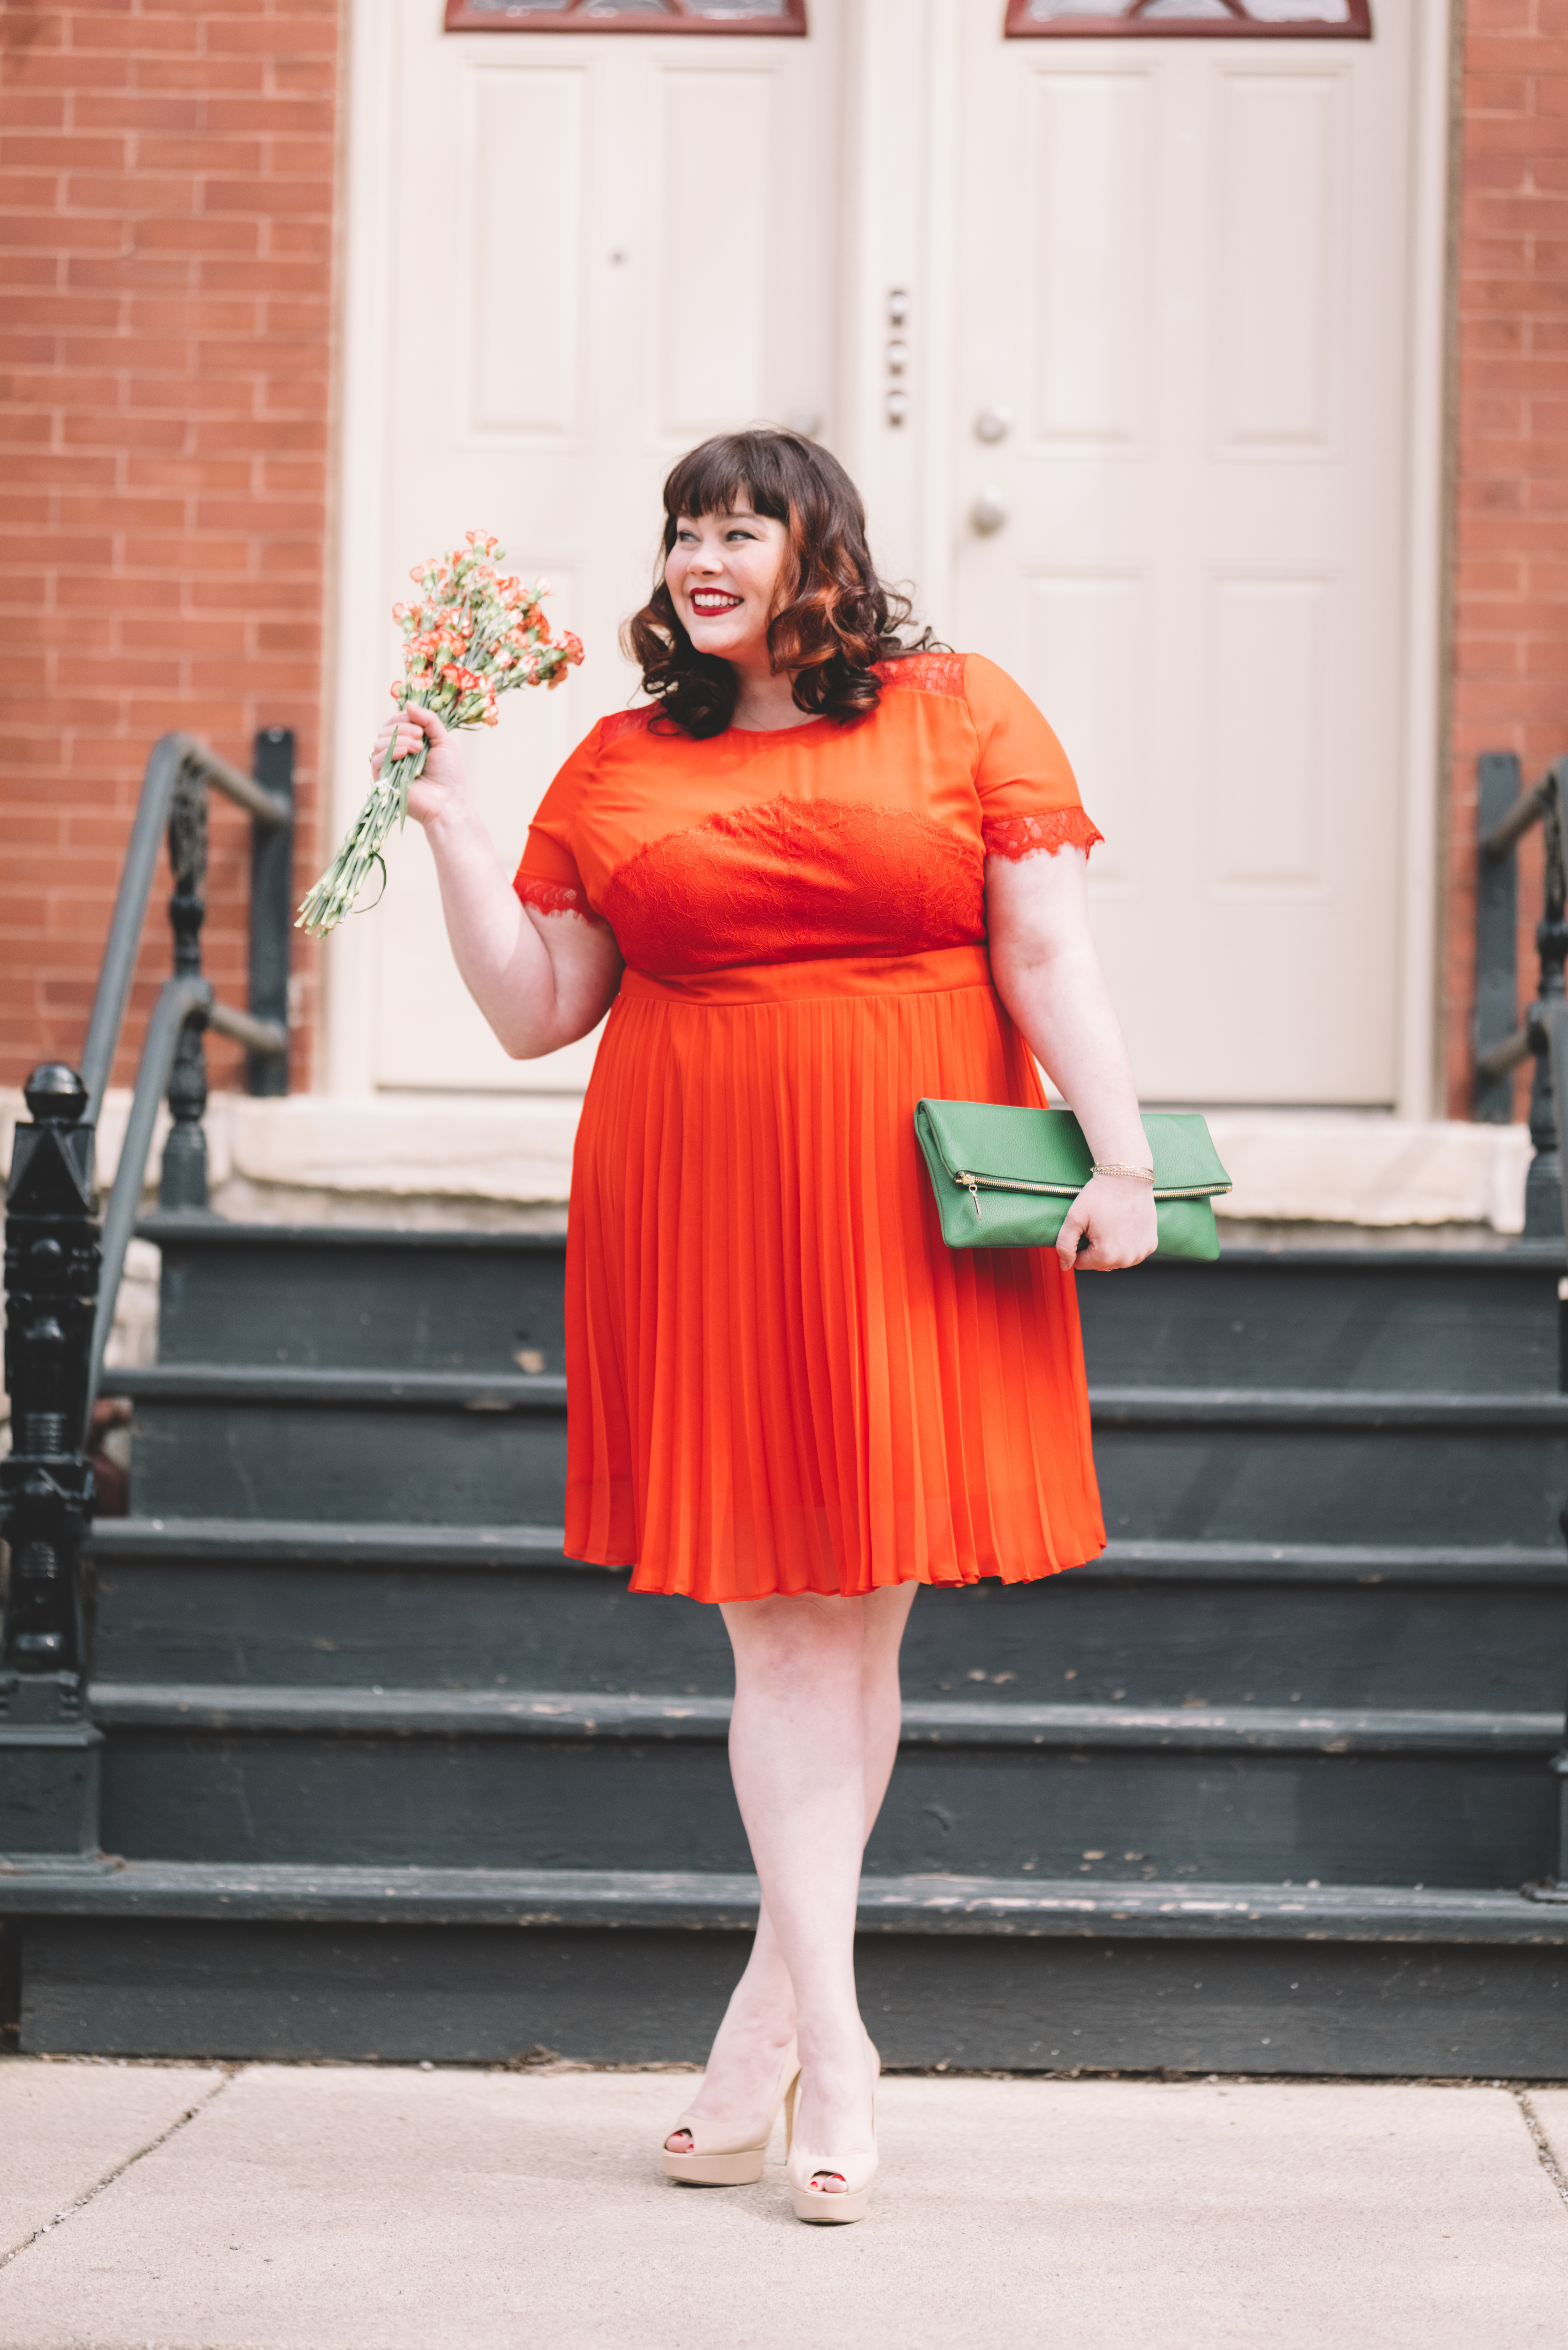 Plus Size blogger Style Plus Curves in an Orange dress and Green Custom Leather Bag from Laudi Vidni